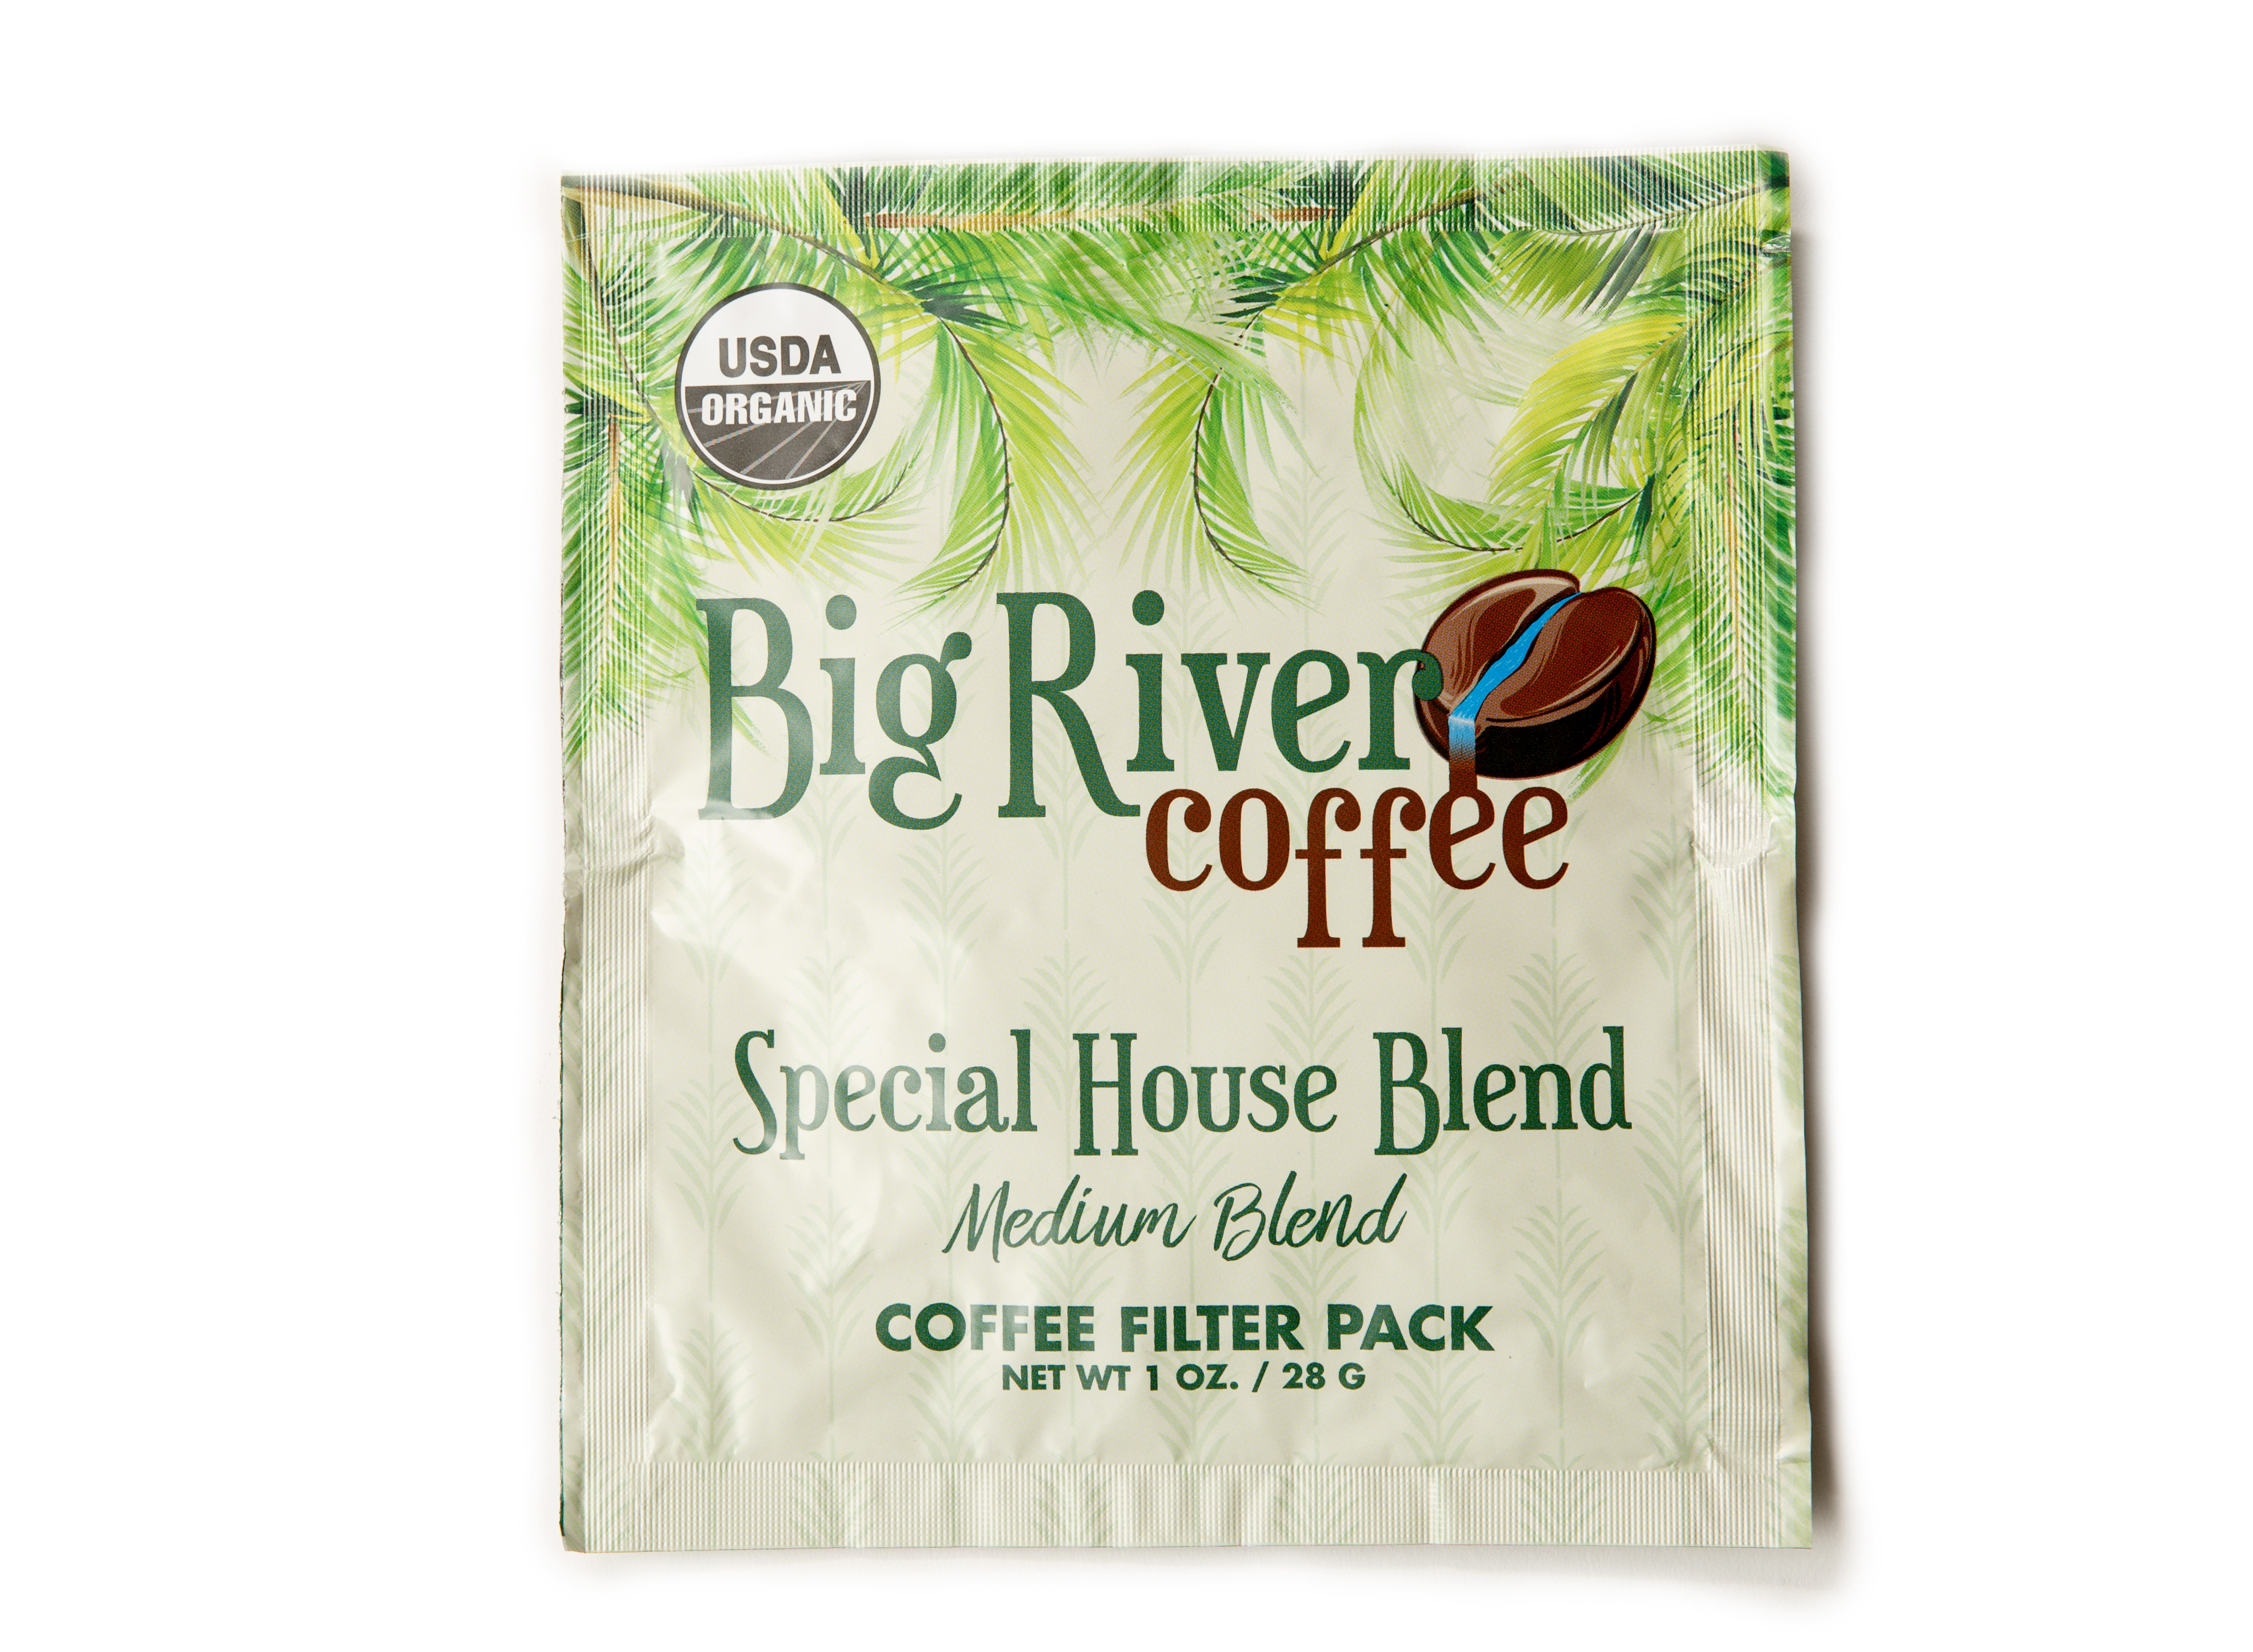 Special House Blend Organic 4-Cup Filter Packs